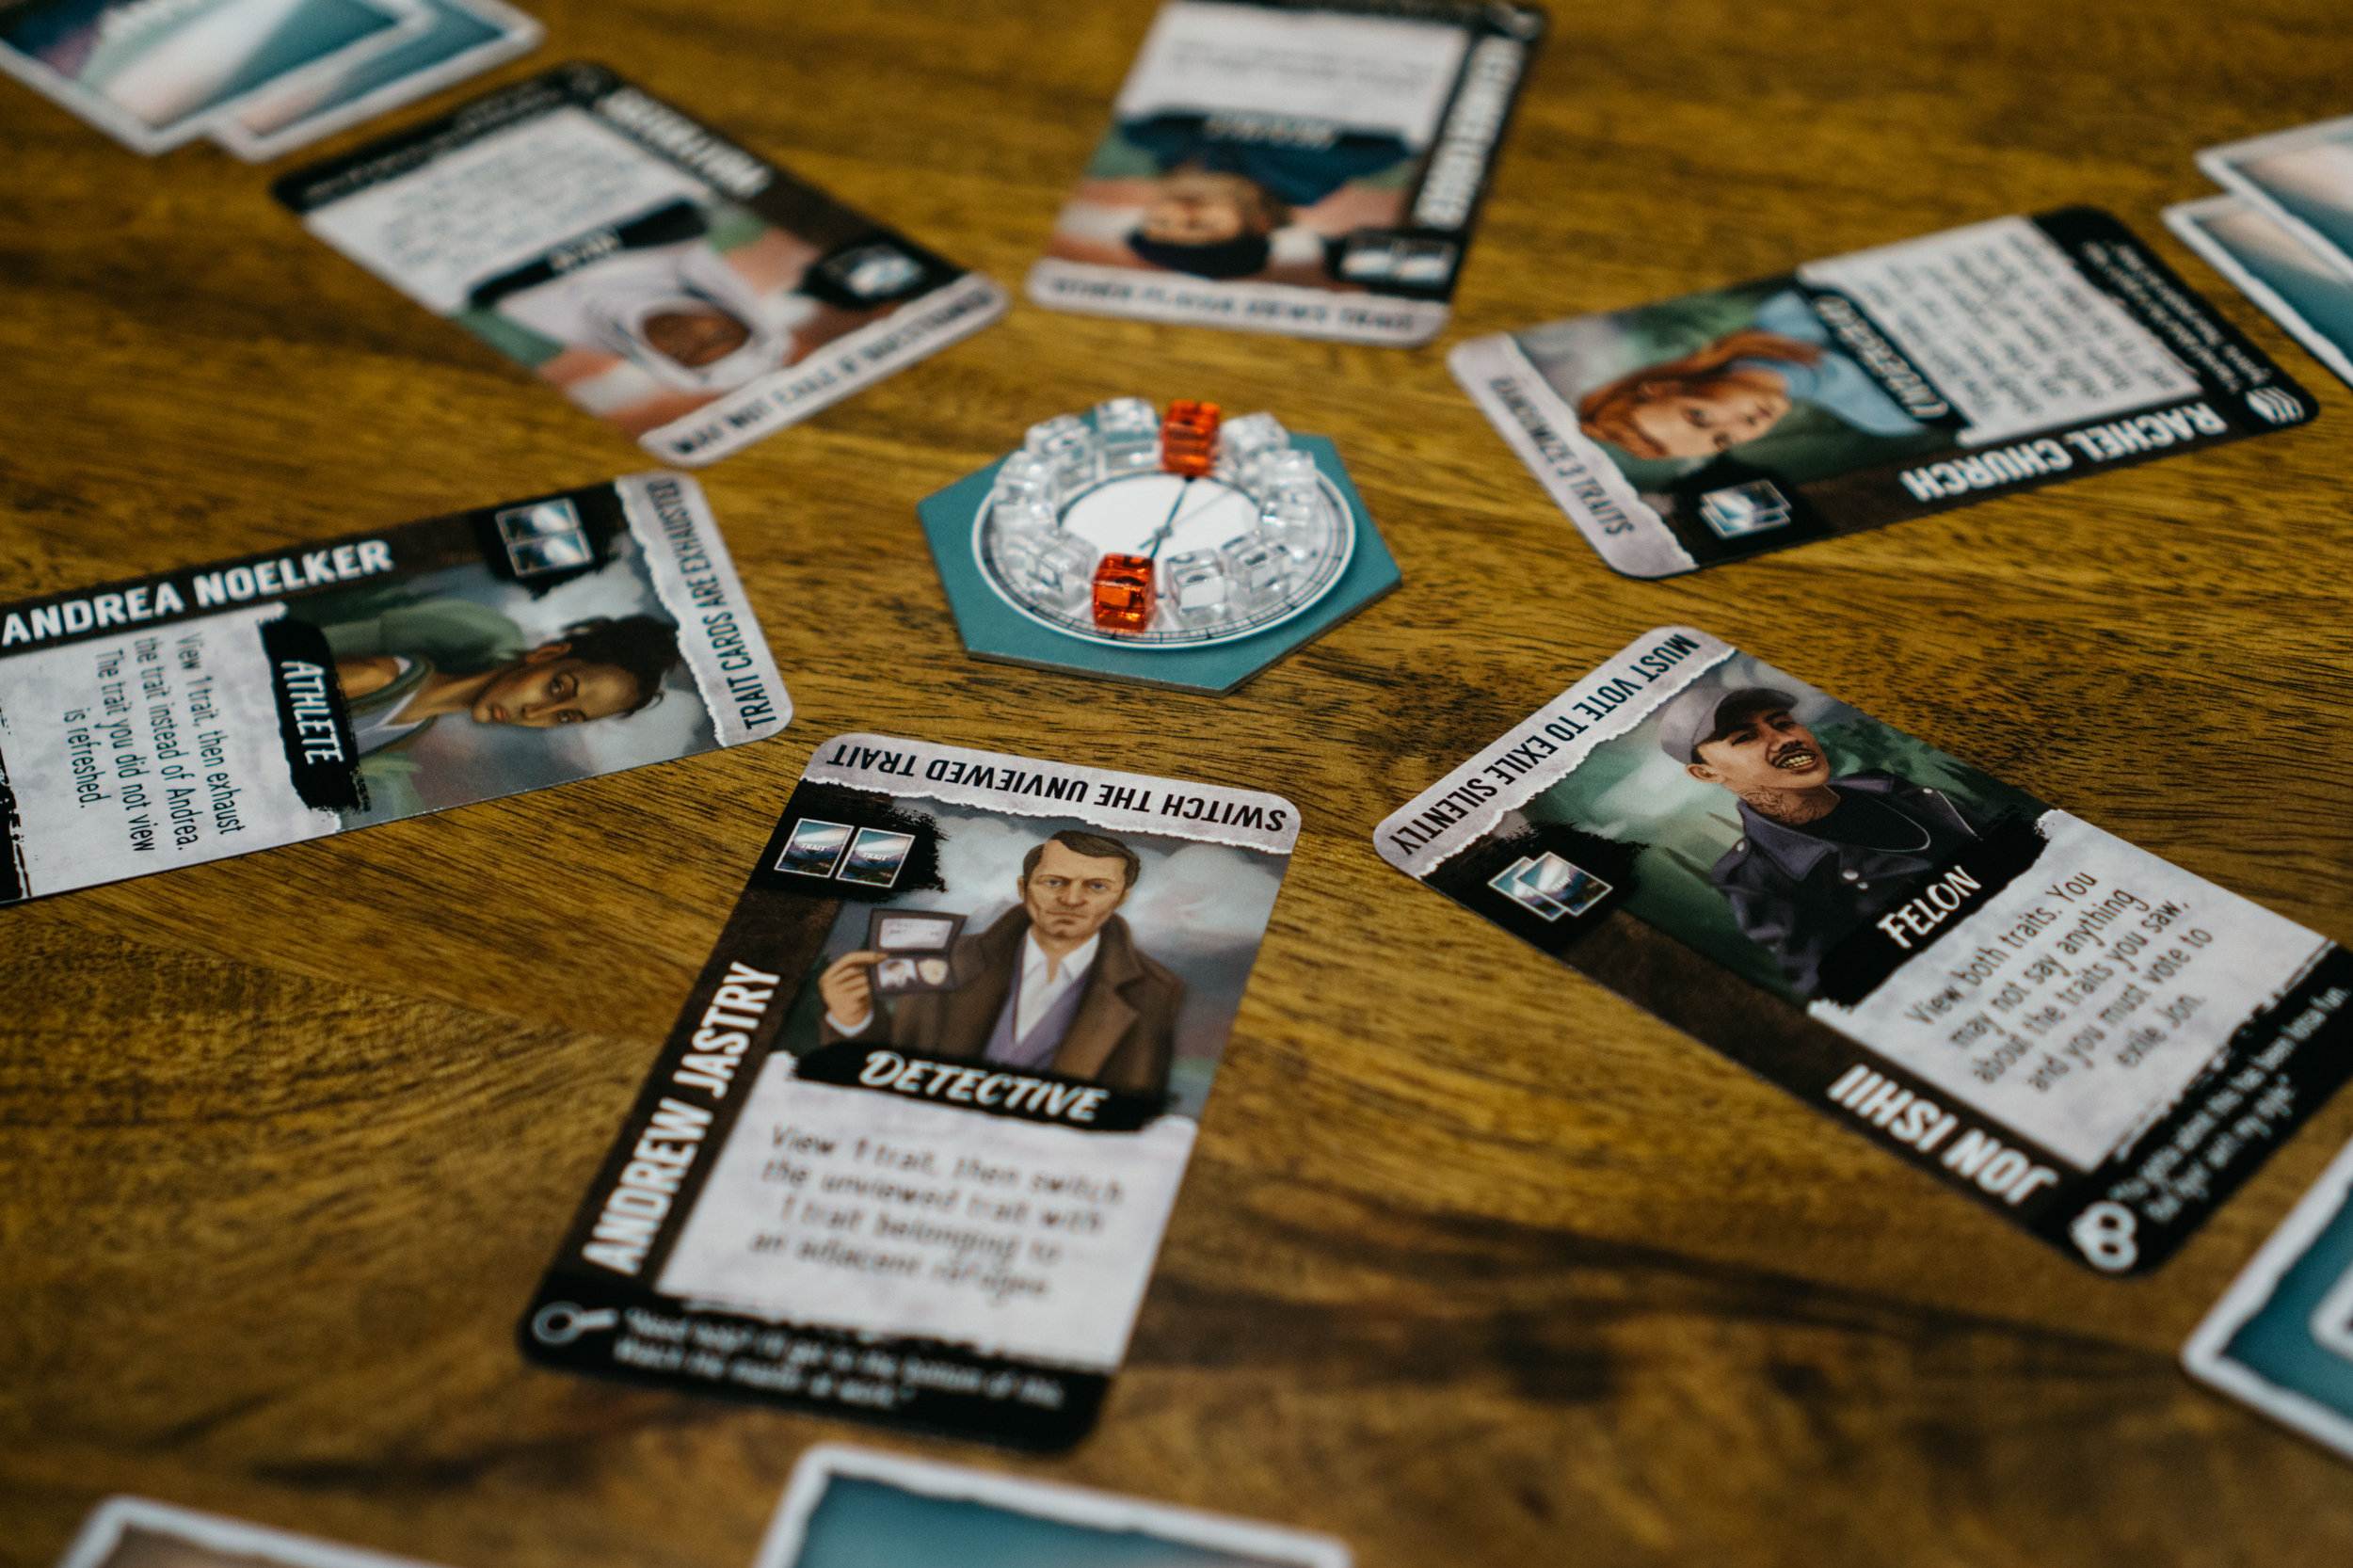 The End is Nigh card game display image